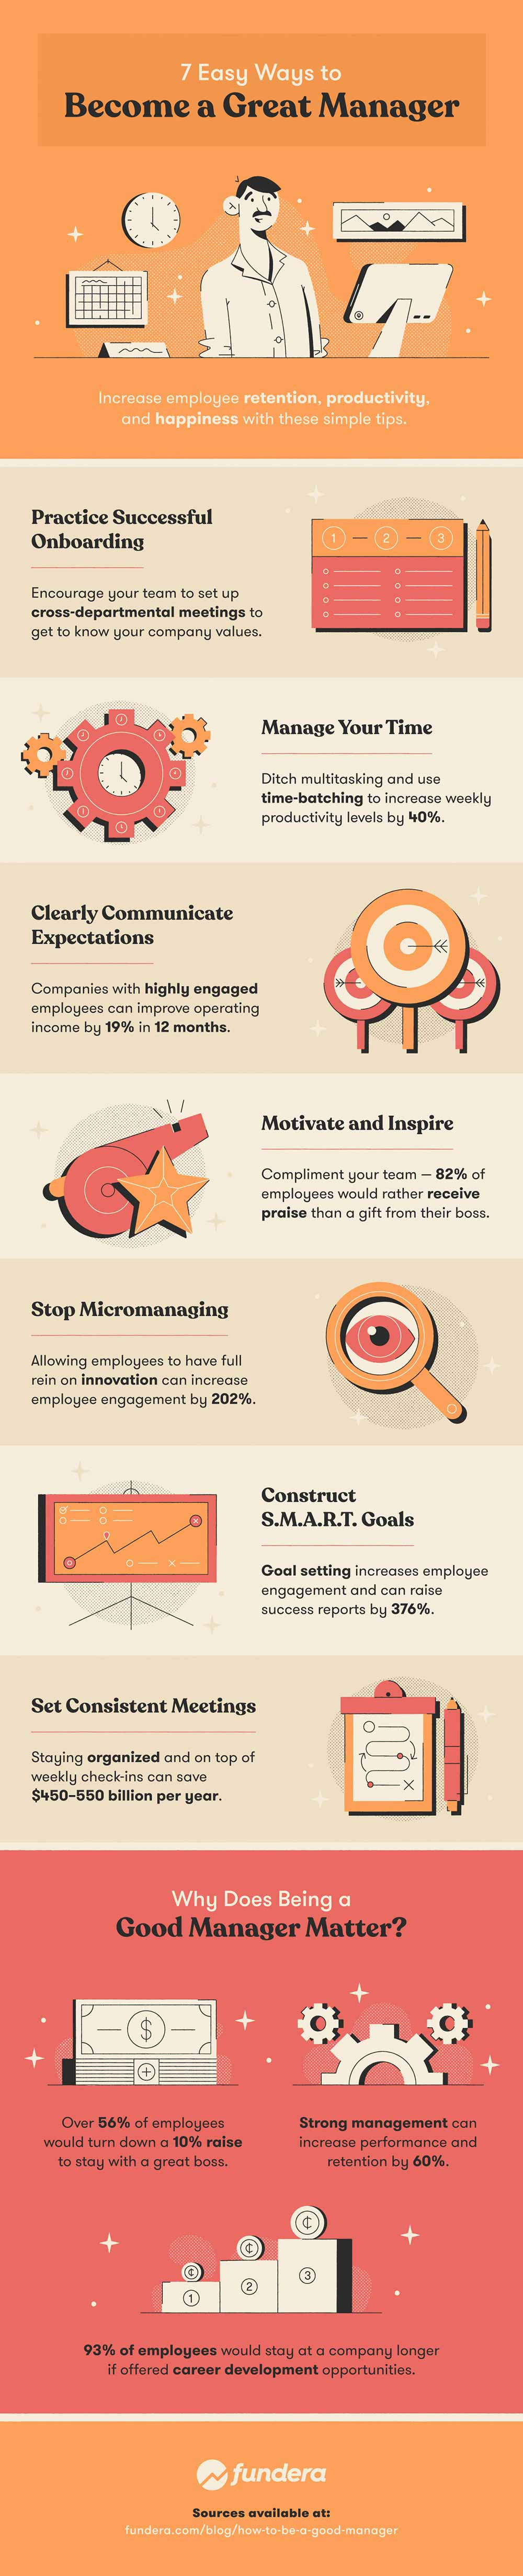 How to Be a Great Manager Infographic